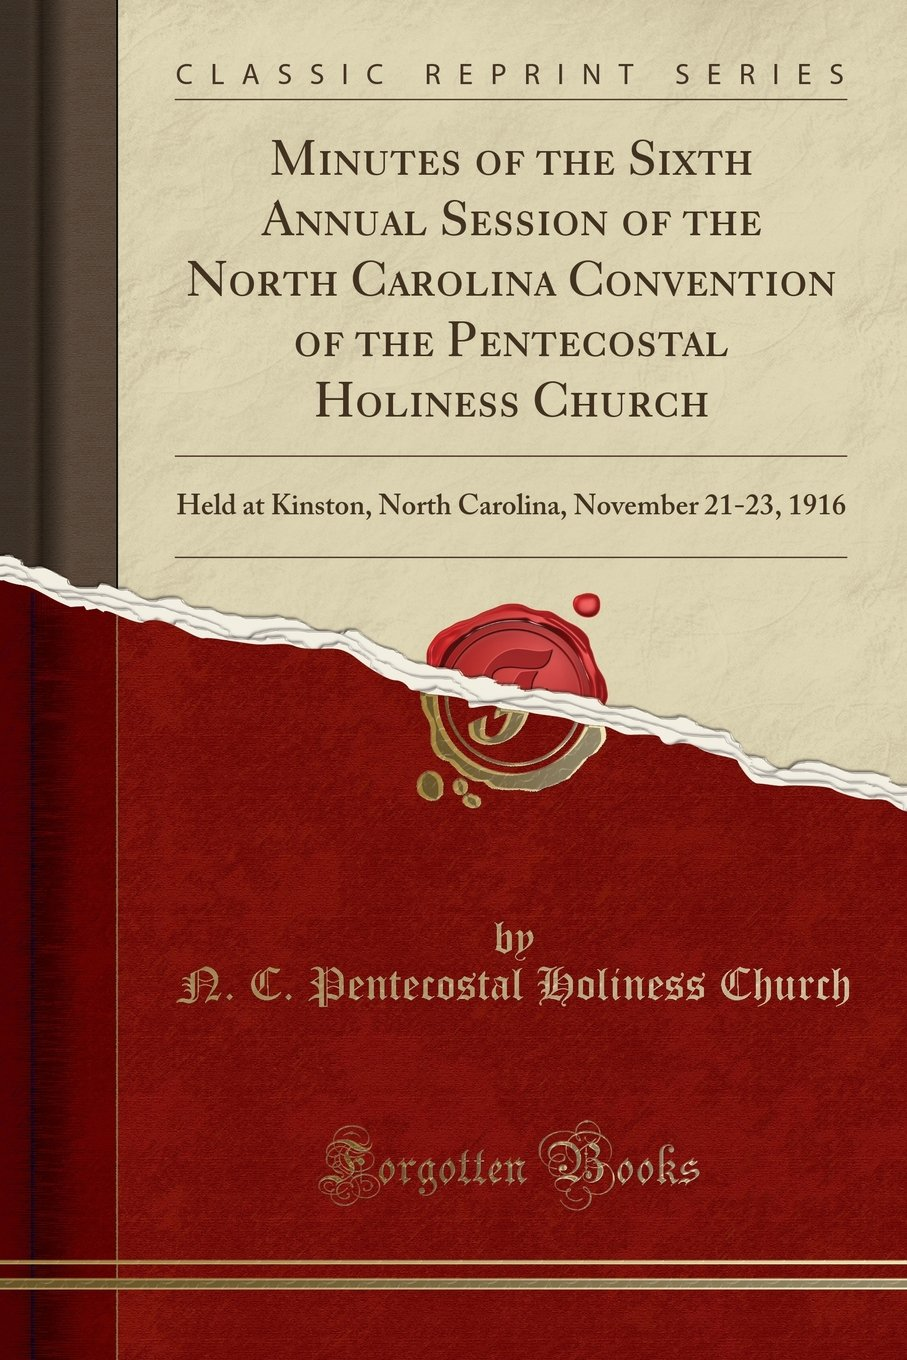 Download Minutes of the Sixth Annual Session of the North Carolina Convention of the Pentecostal Holiness Church: Held at Kinston, North Carolina, November 21-23, 1916 (Classic Reprint) ebook